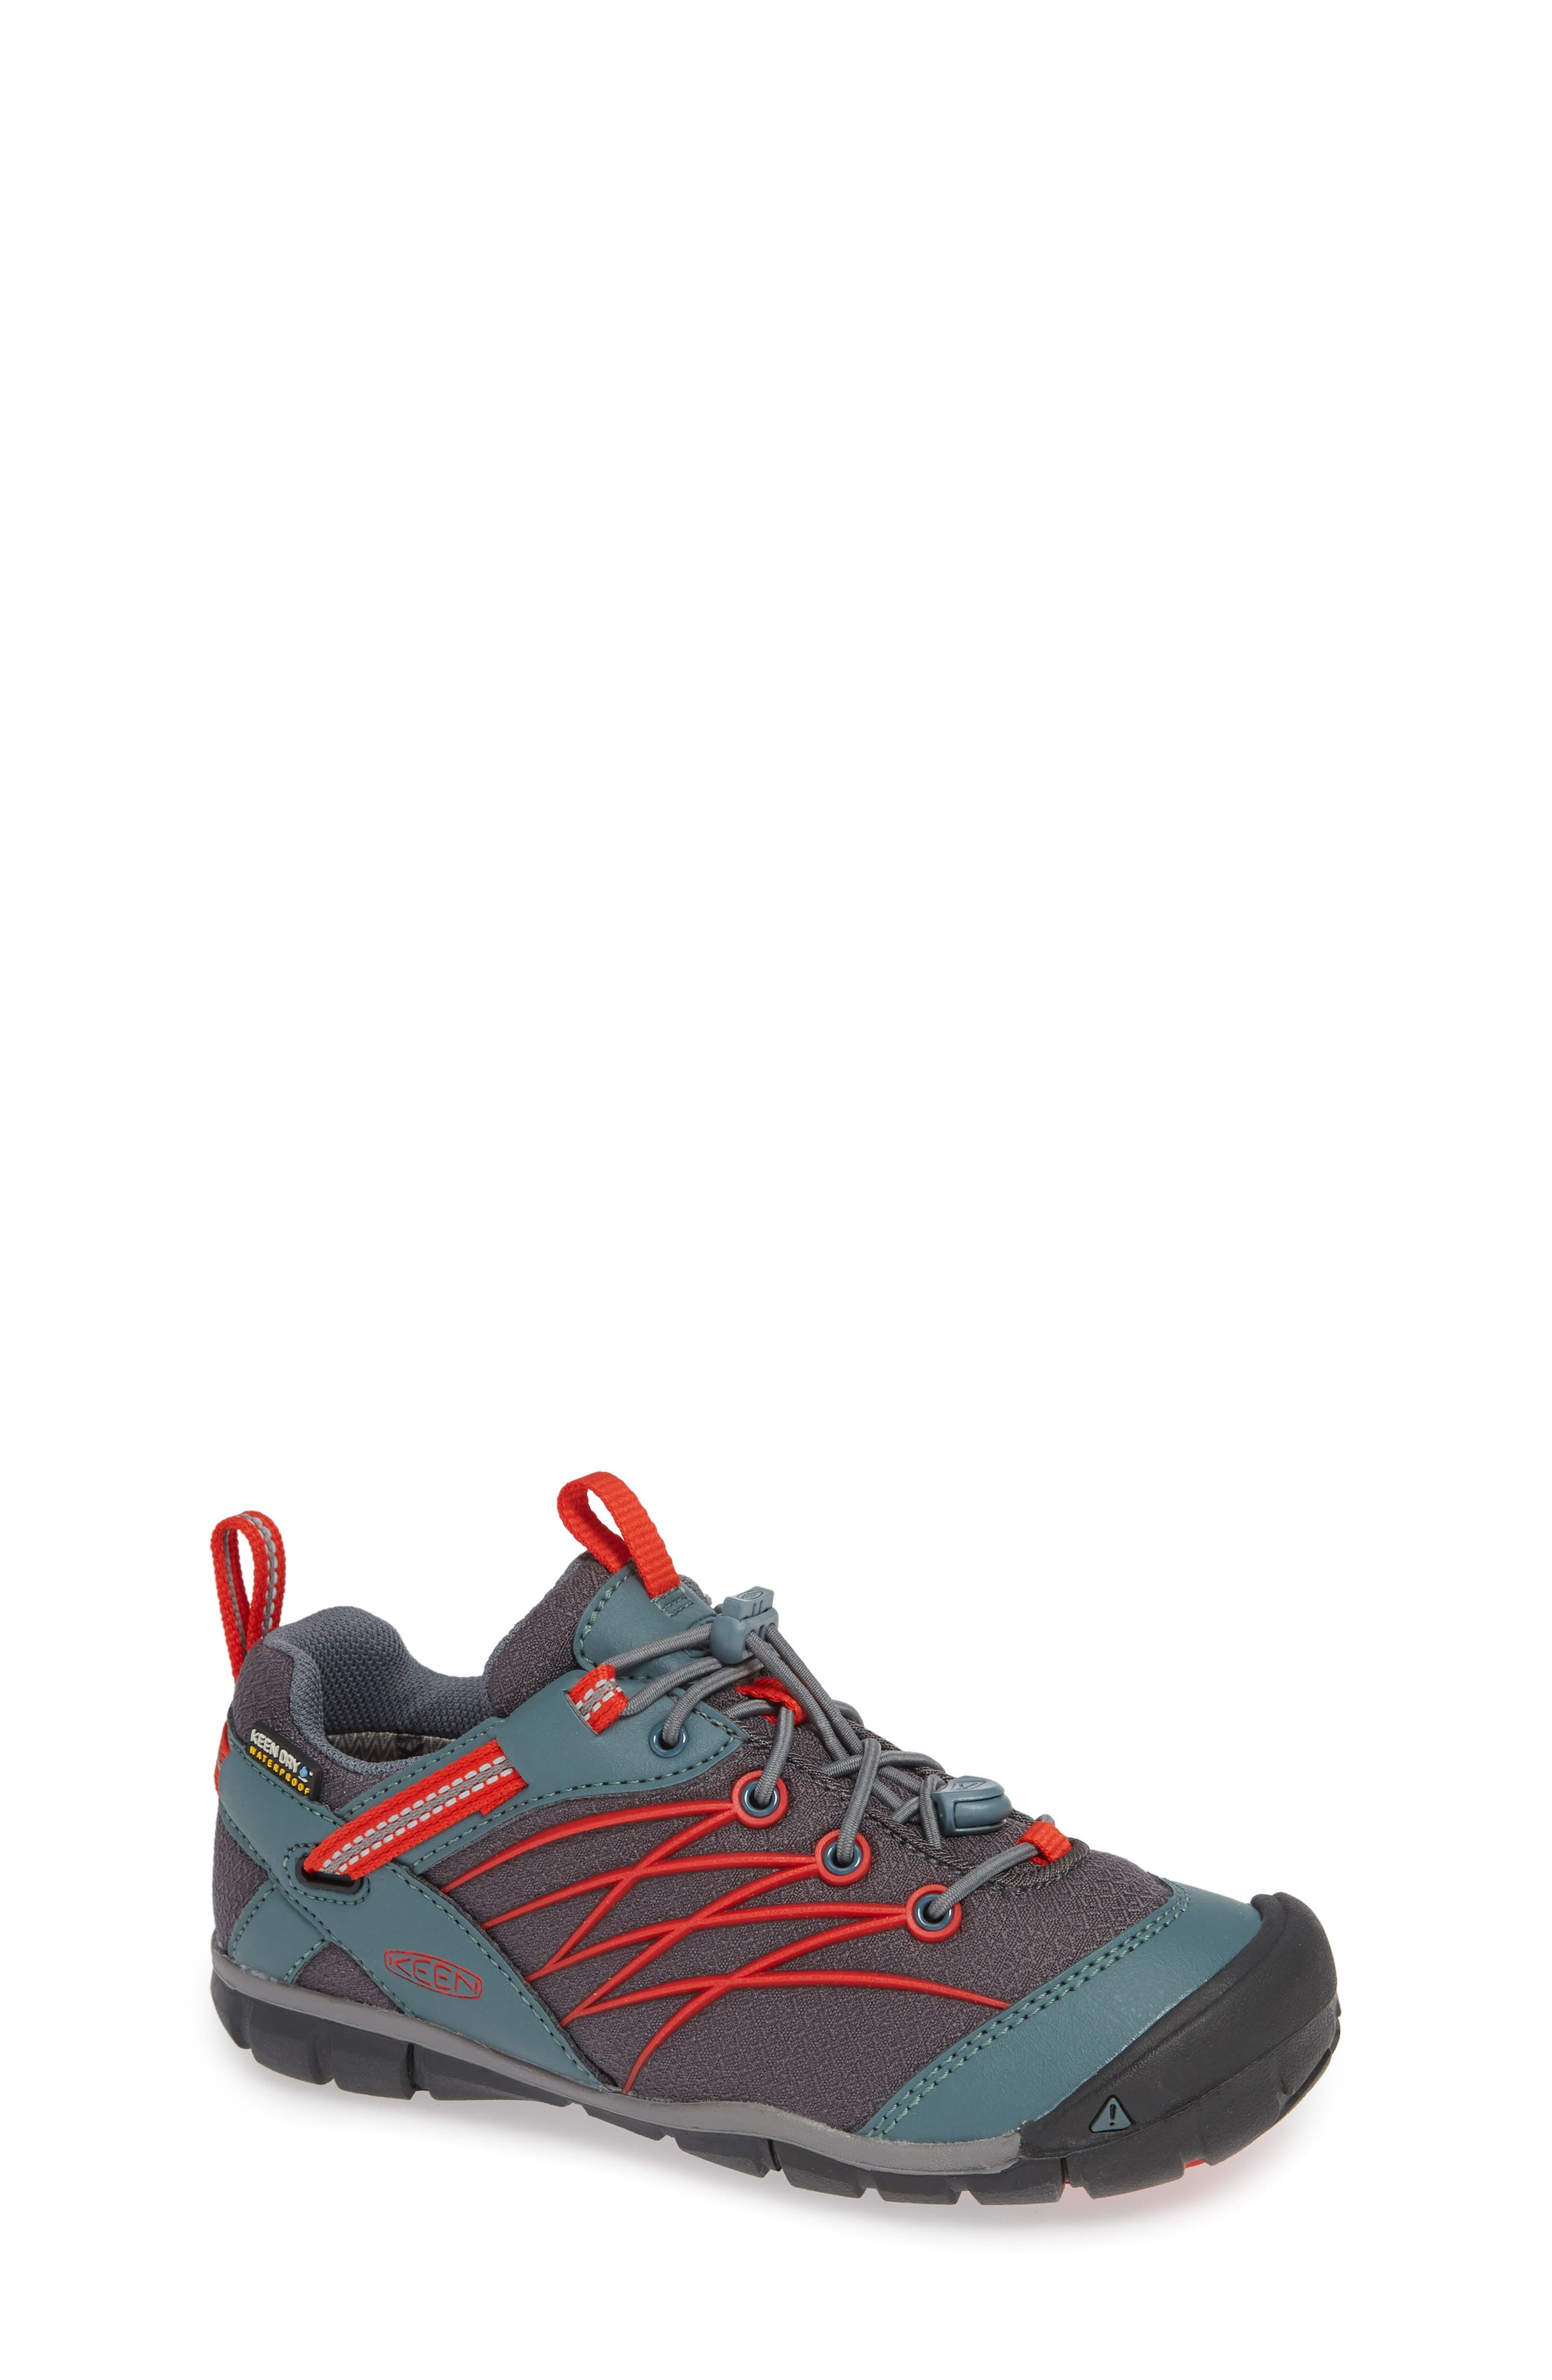 Chandler CNX Waterproof Sneaker,                             Main thumbnail 1, color,                             STORMY/ RED